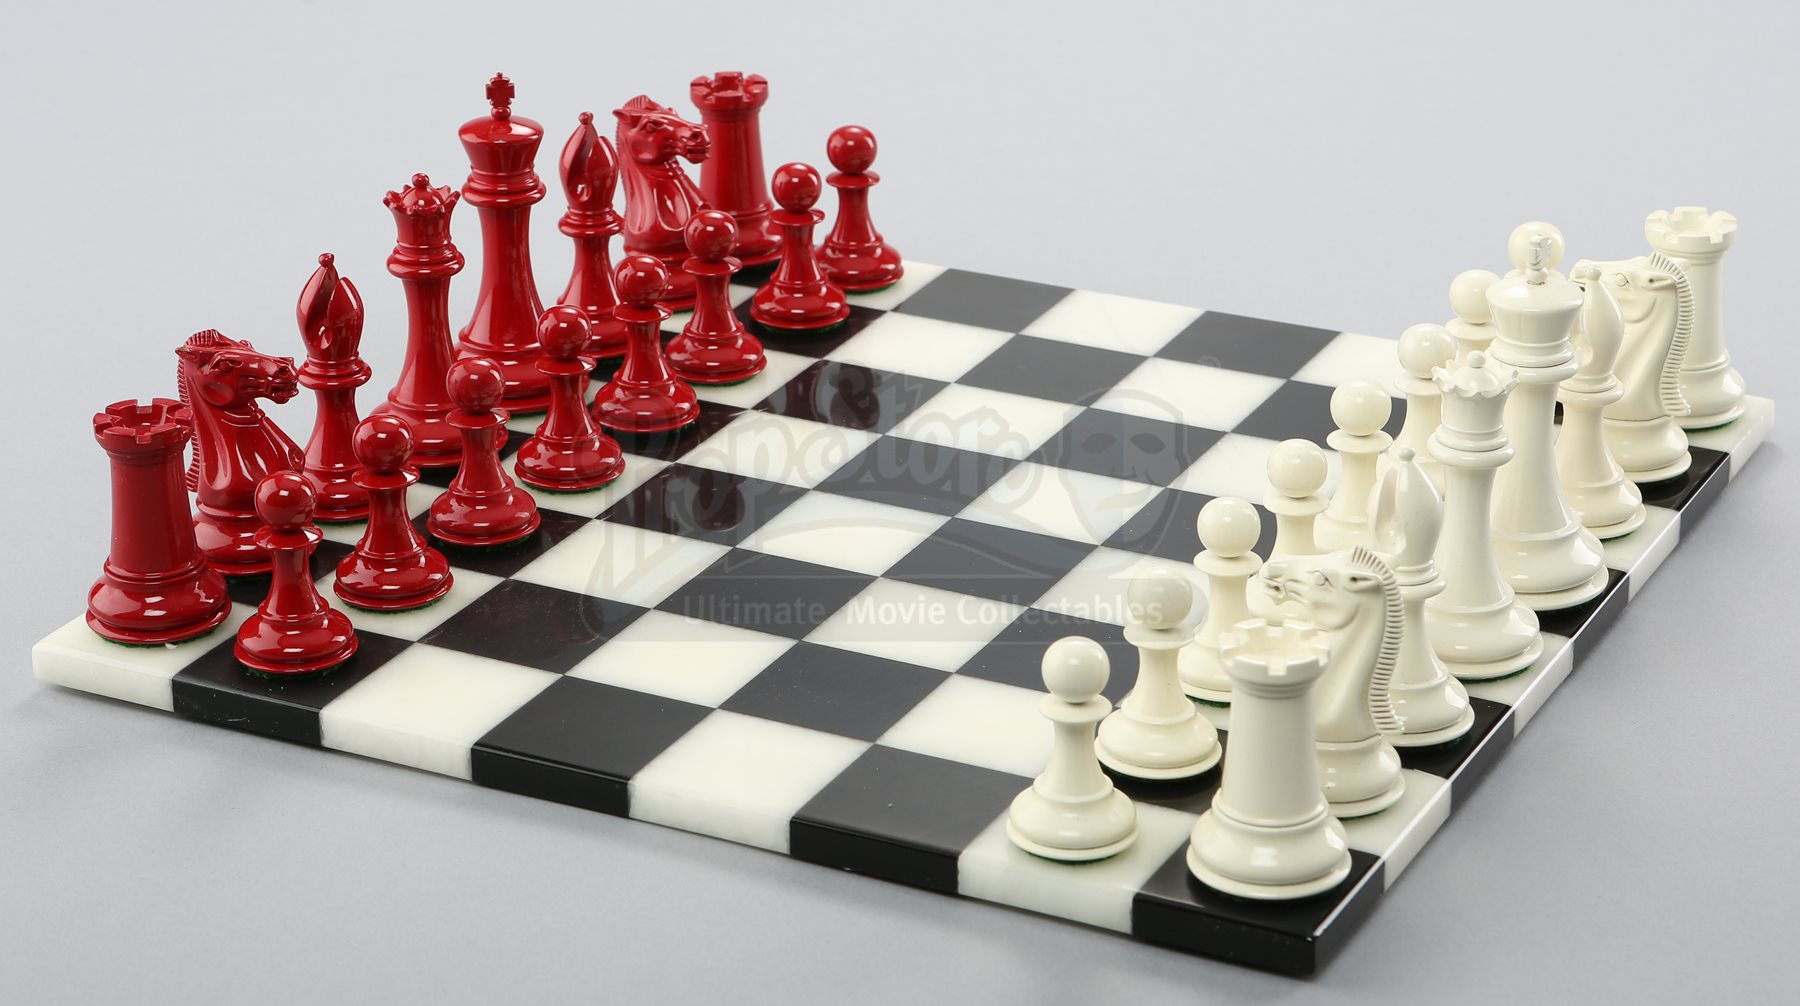 Lot 549 Bella And Edward Cullen S Chess Set